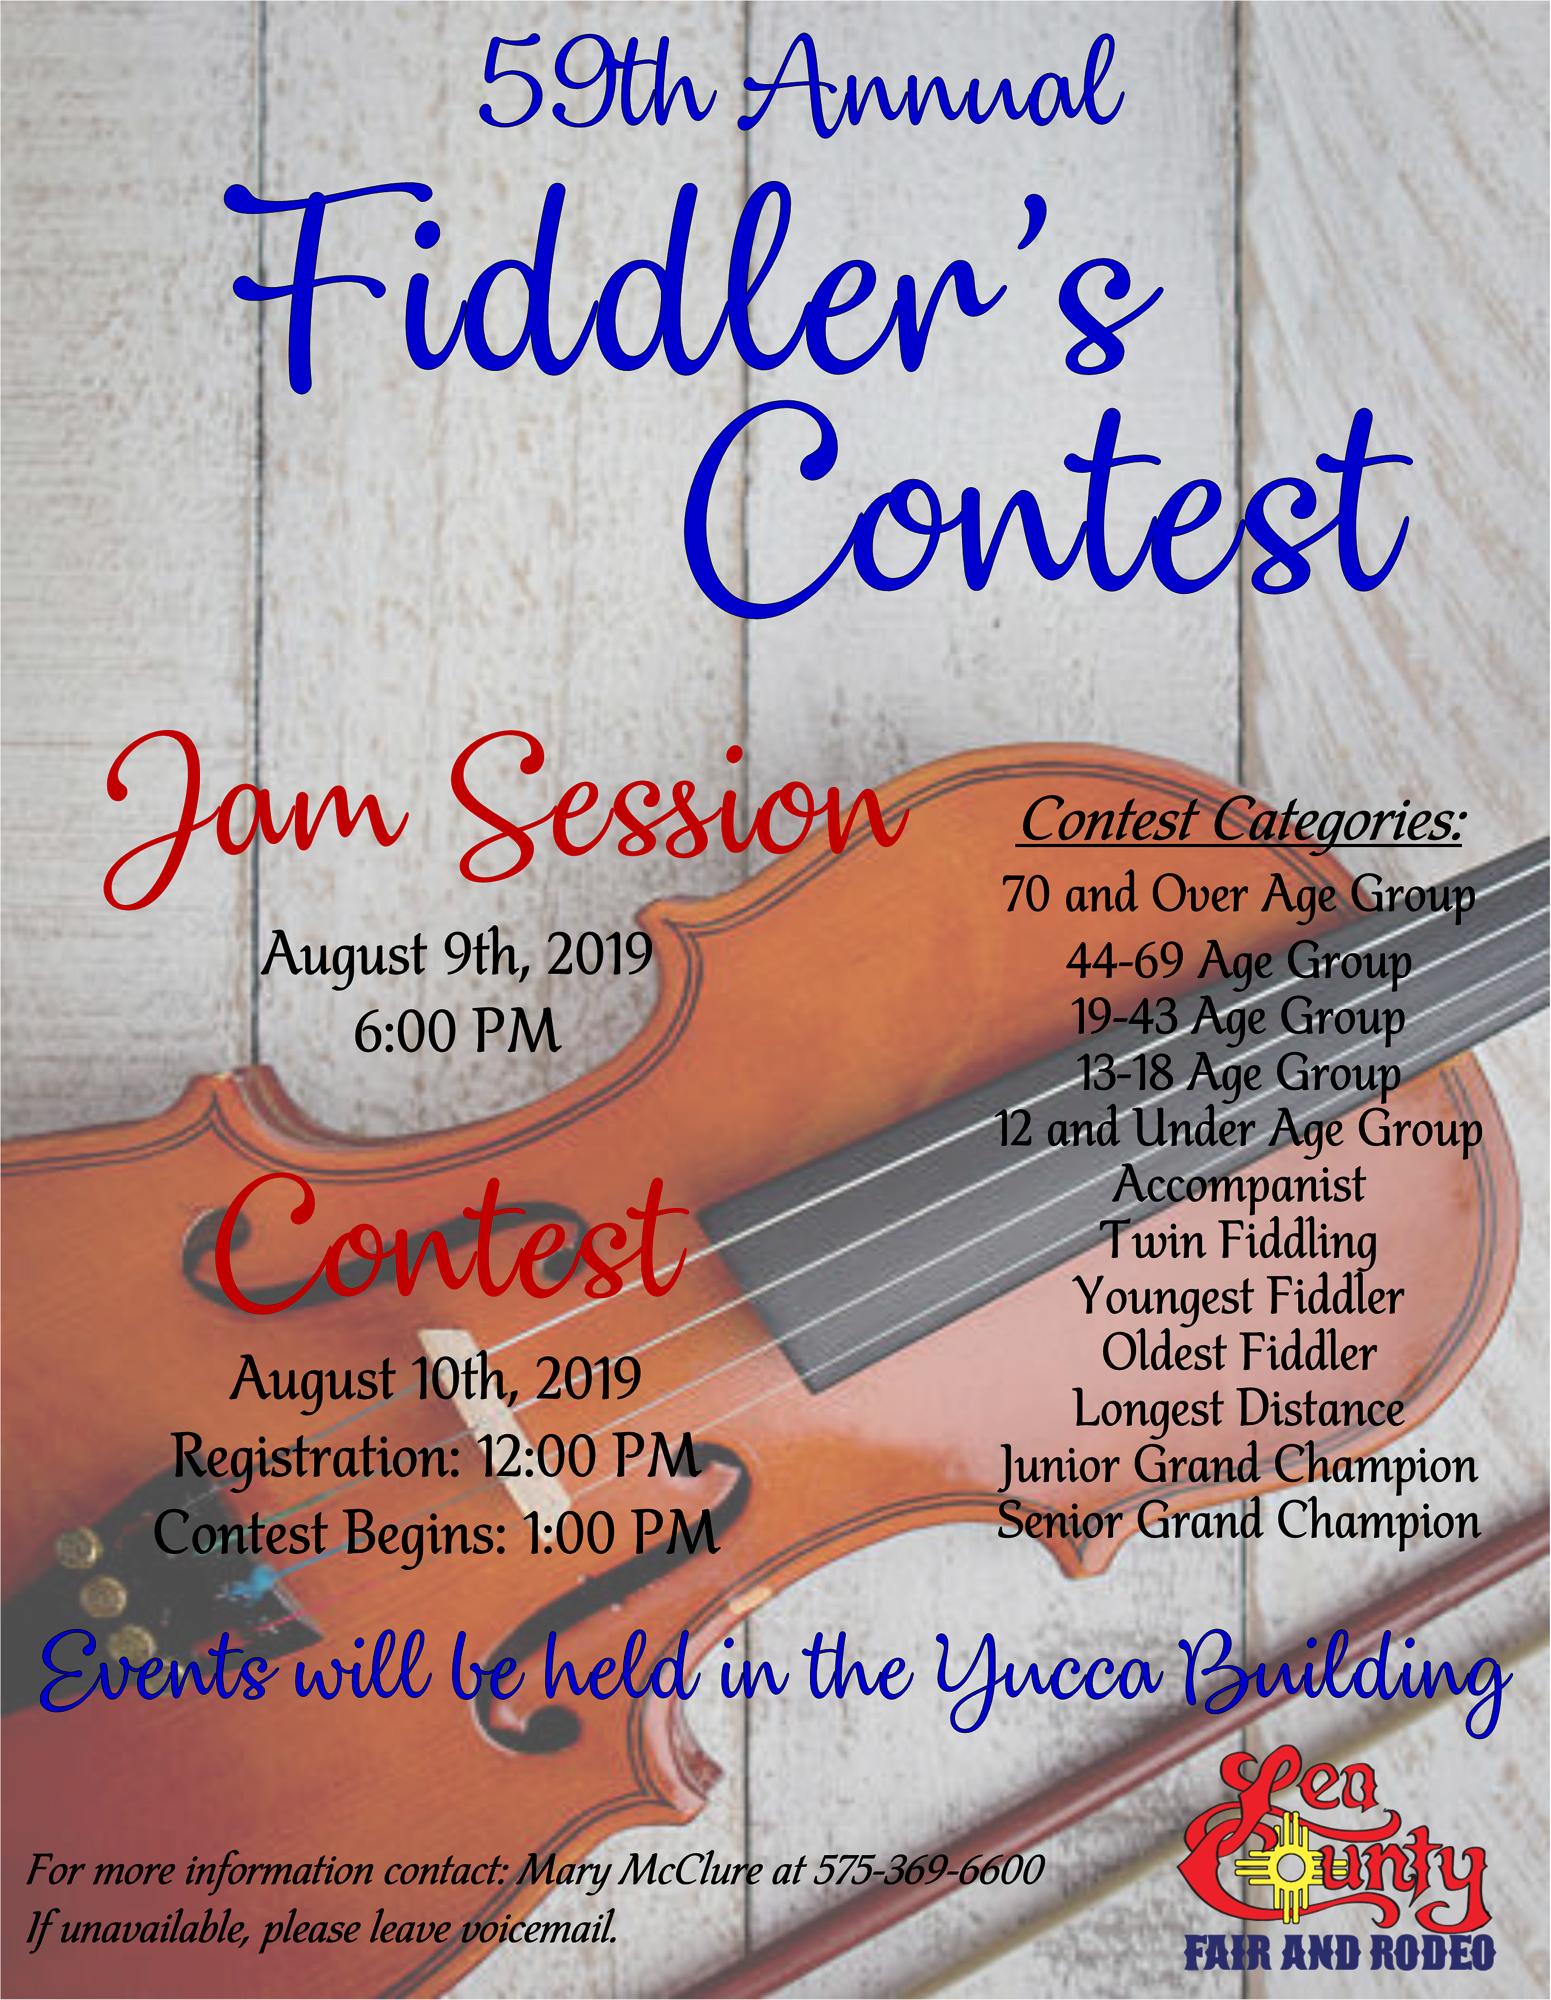 59th Annual Fiddler's Contest